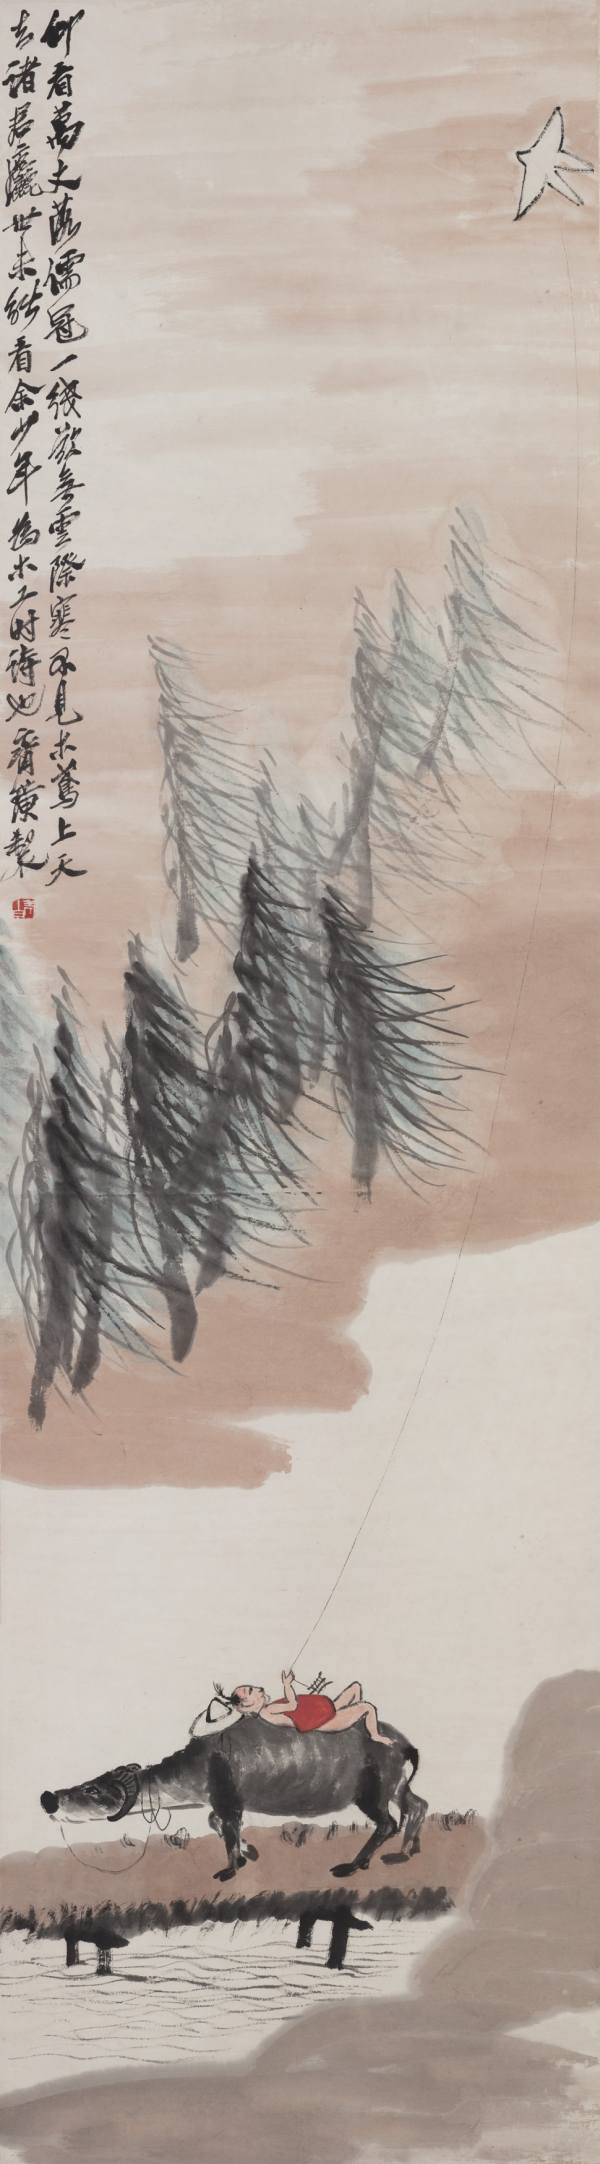 Qi Baishi, Flying a Kite, China, c. 1930